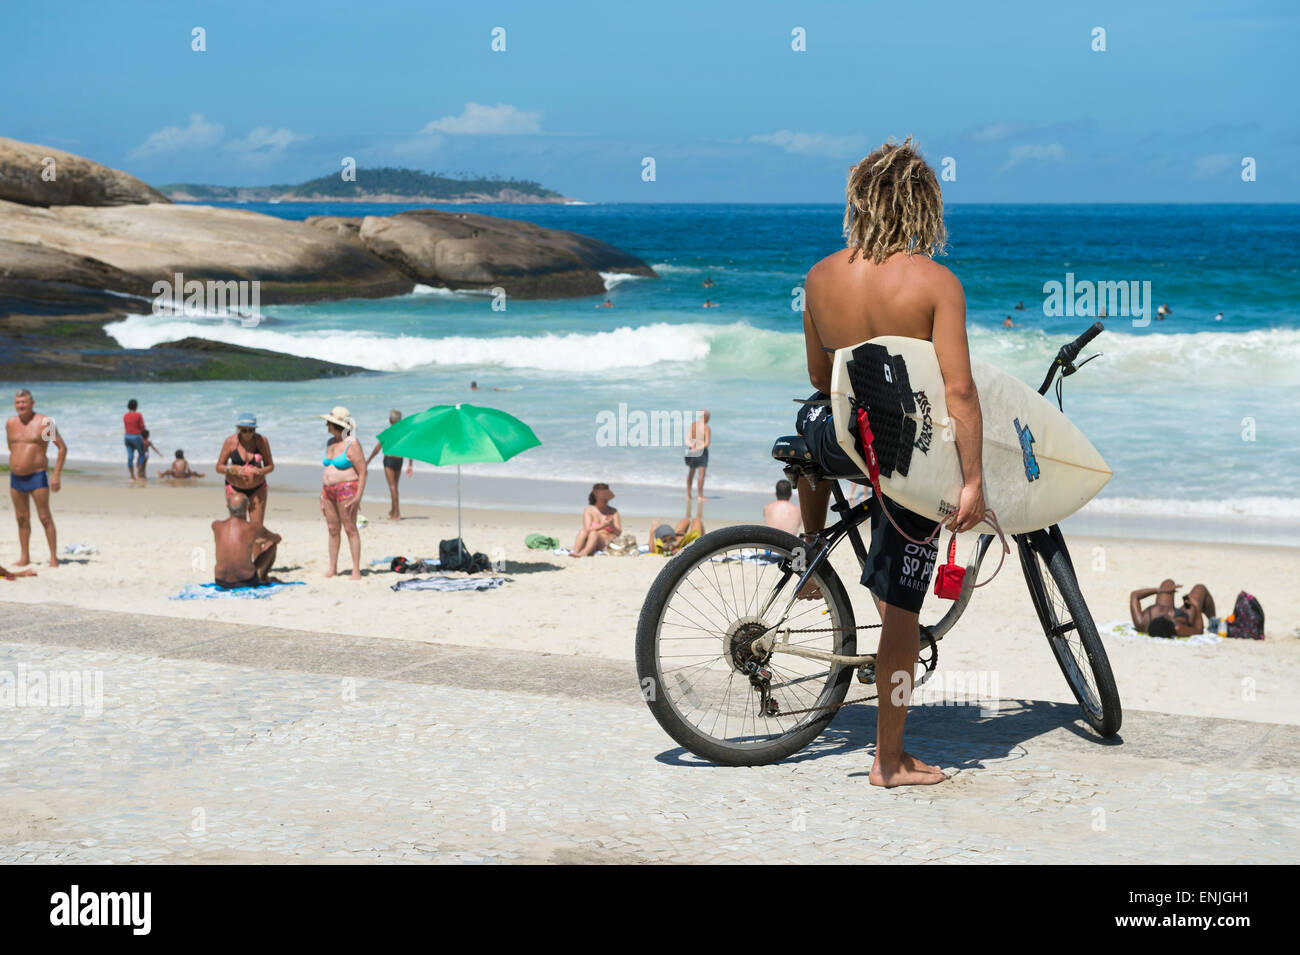 RIO DE JANEIRO, BRAZIL - FEBRUARY 2015: Brazilian surfer on a bike sits looking out at the waves at Arpoador. - Stock Image